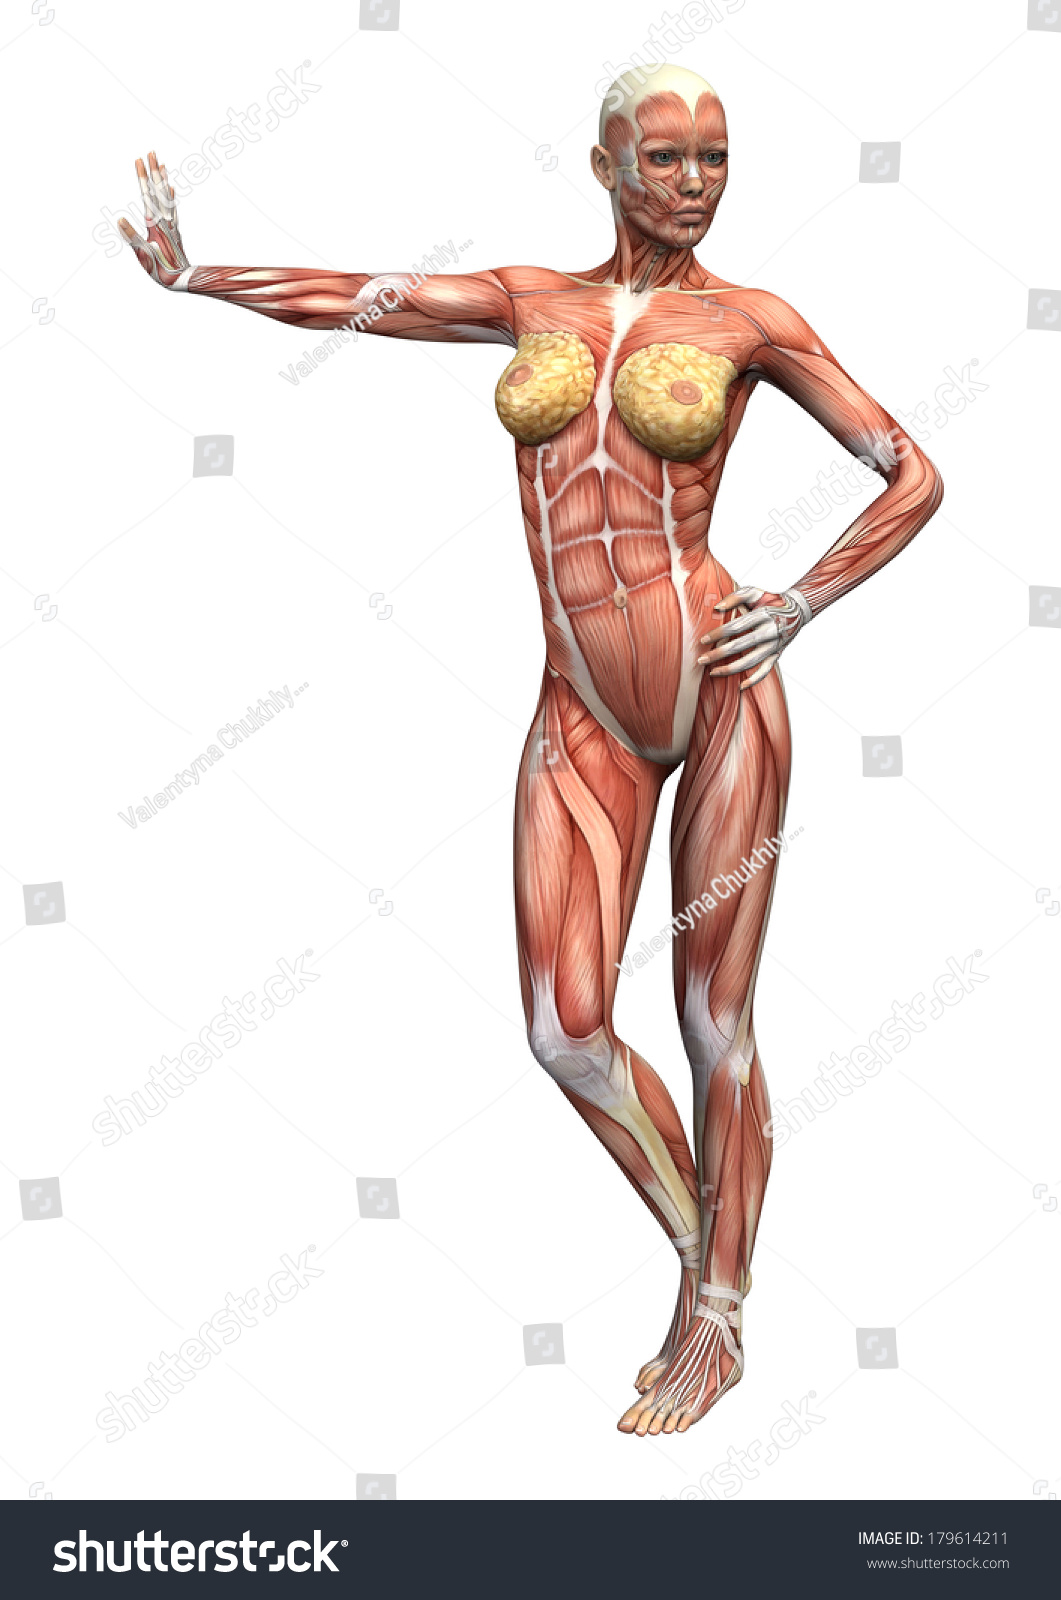 Female Anatomy Figure Image collections - human body anatomy